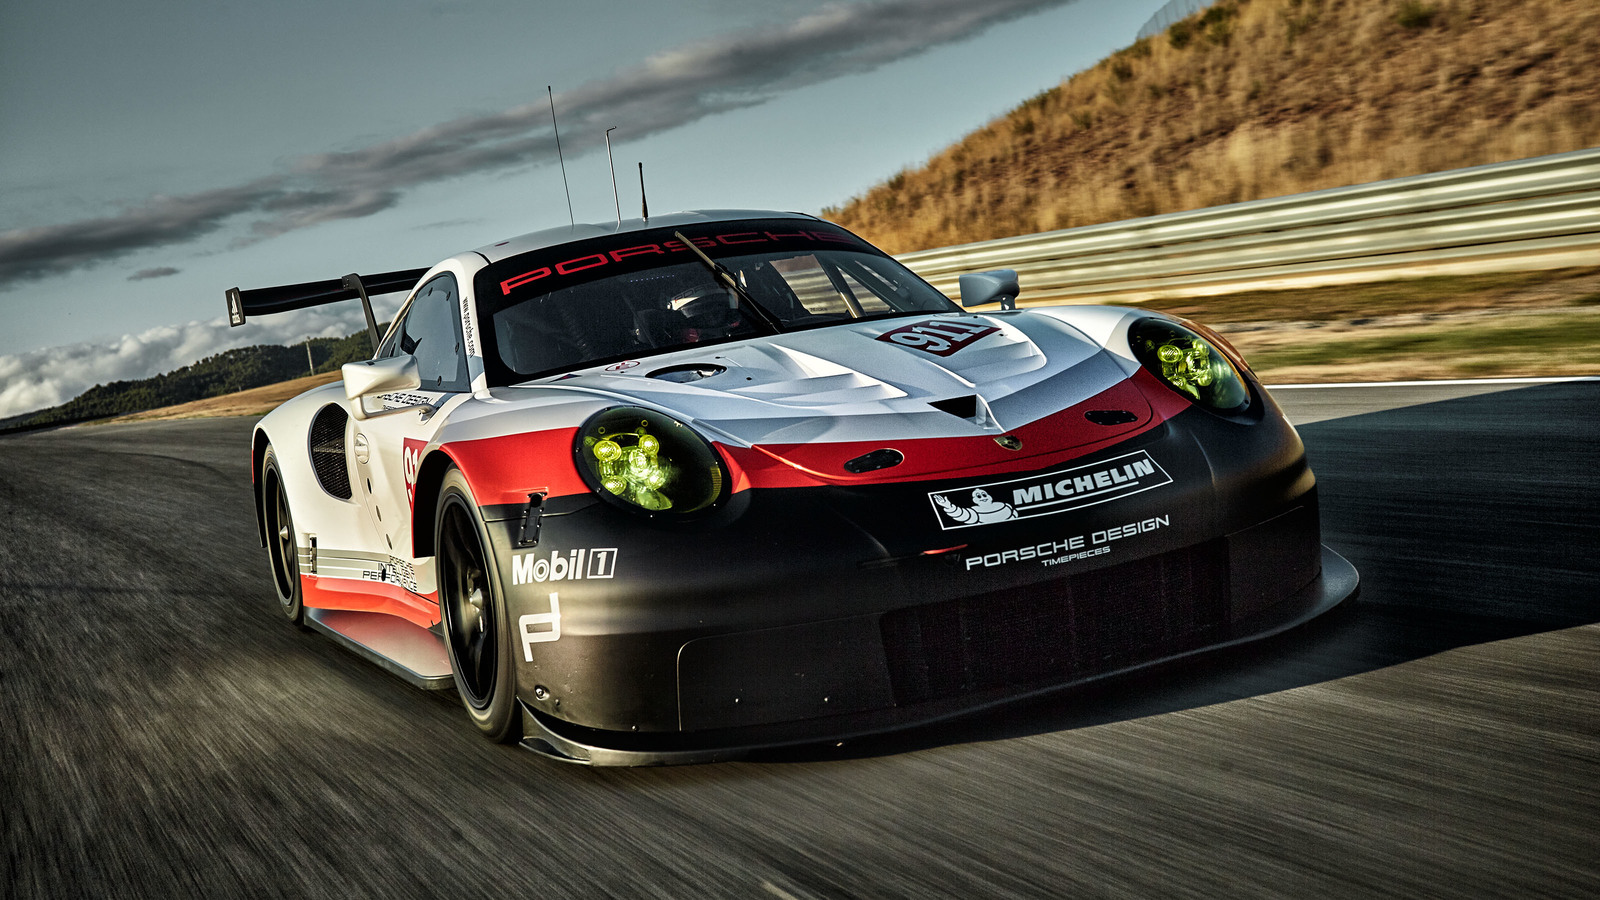 Maserati Sports Car >> 2018 Porsche 911 RSR - Porsche's Mid-engined 911 Race Car2018 Porsche 911 RSR - Porsche's Mid ...